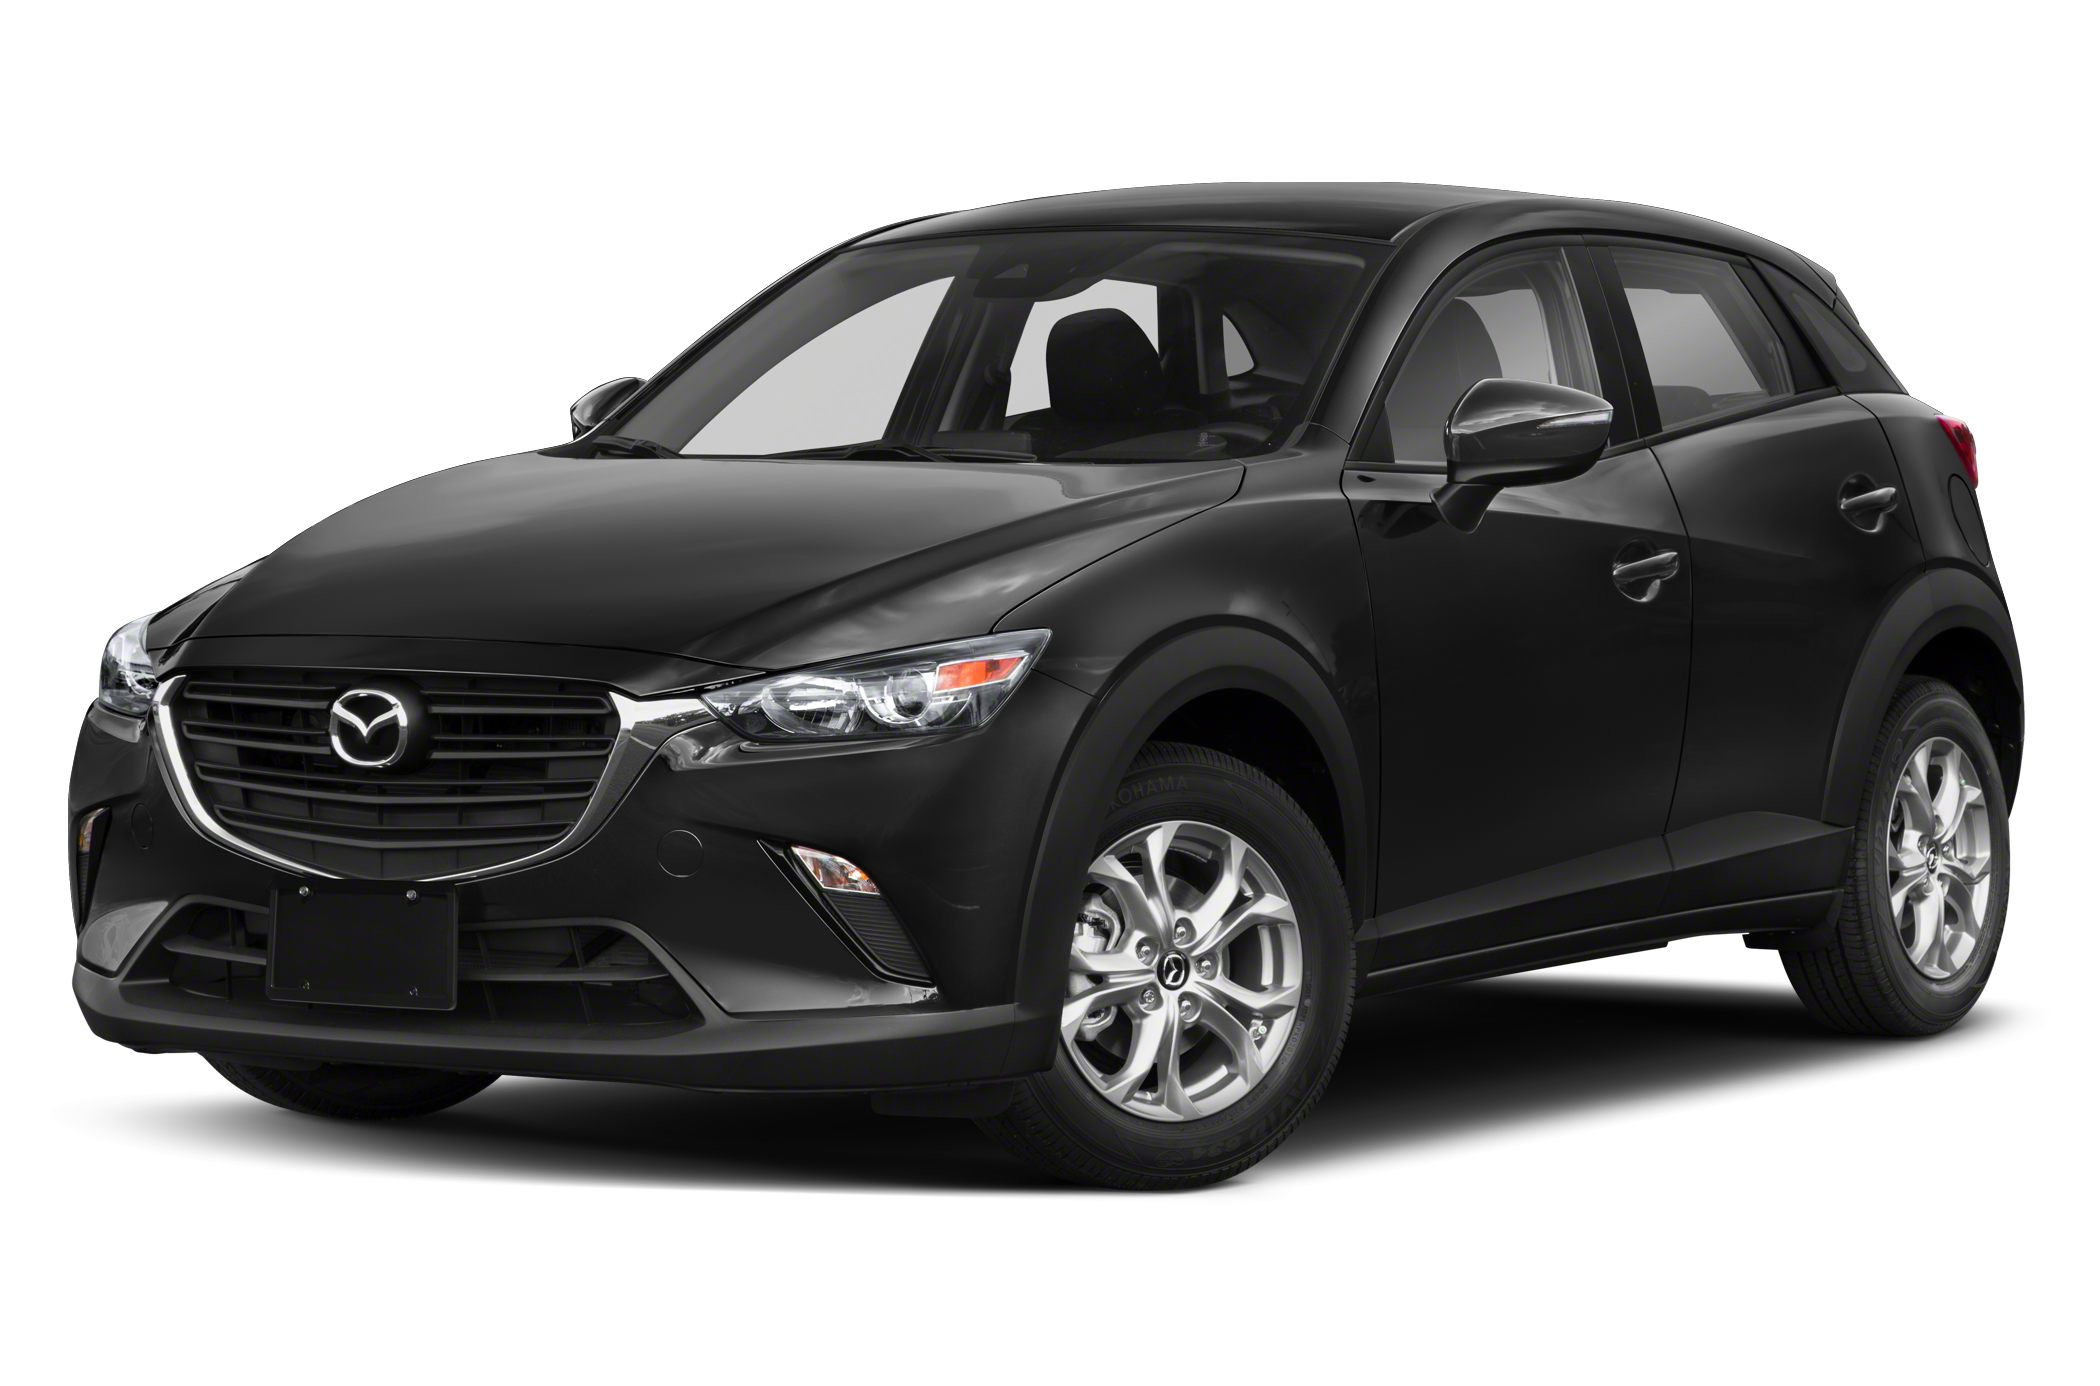 2020 Mazda Cx 3 Safety Features